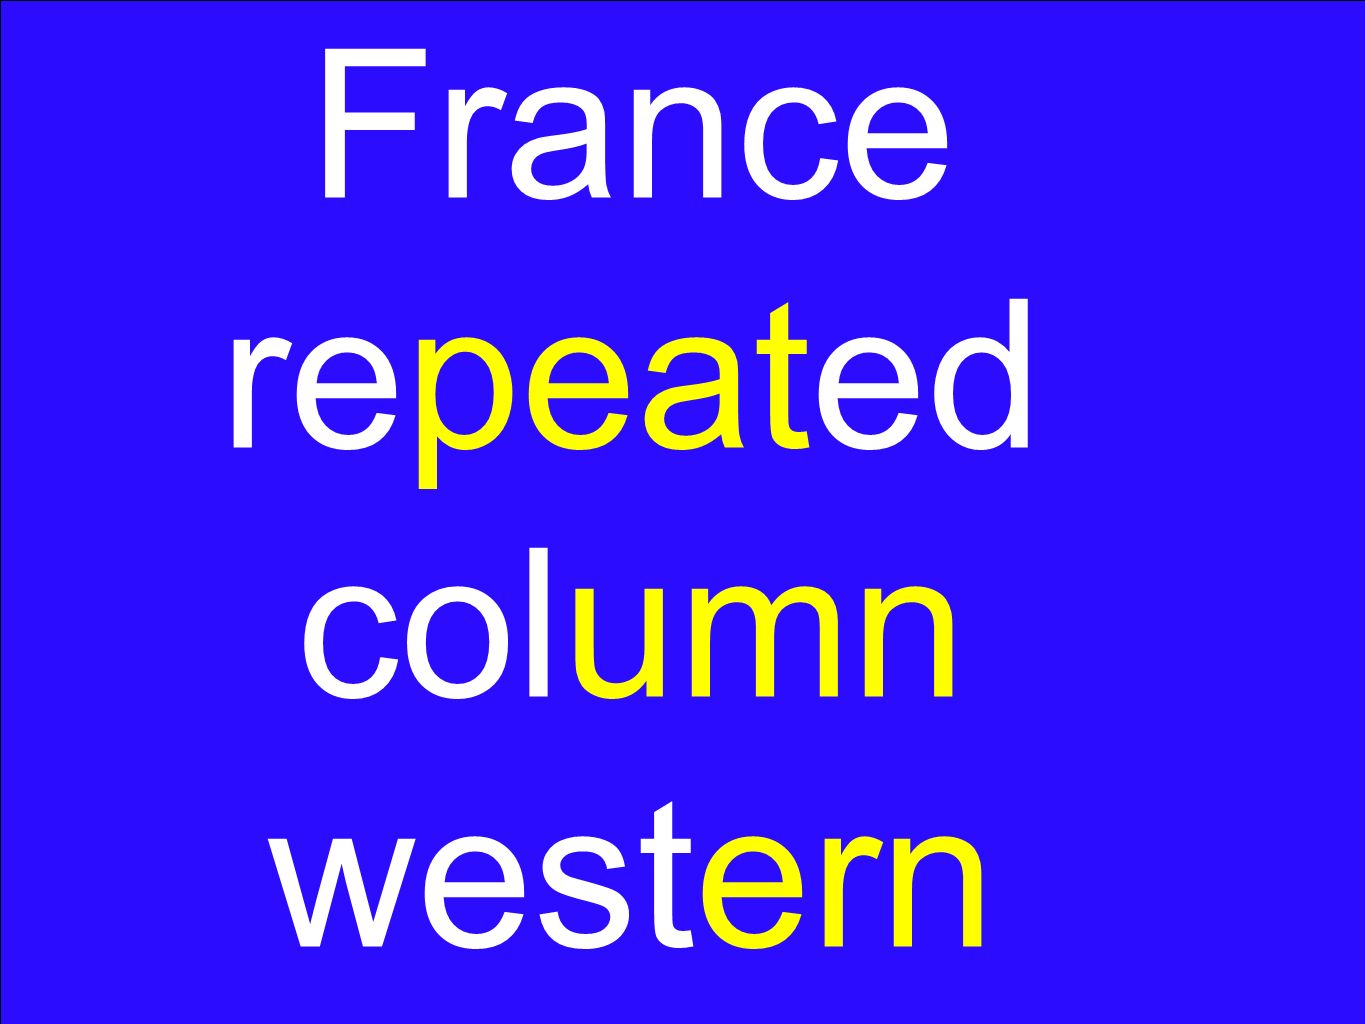 France repeated column western